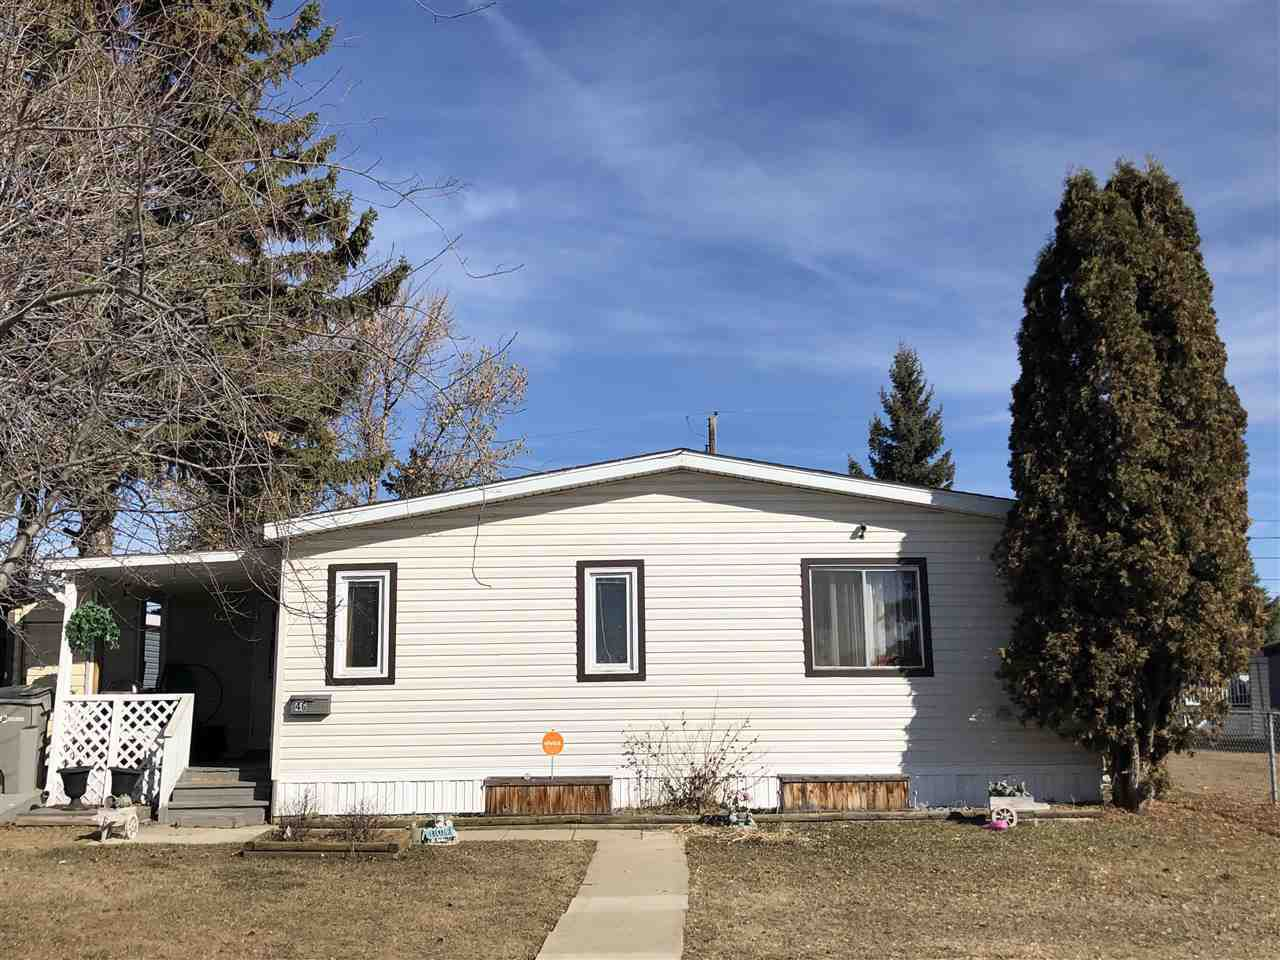 Main Photo: 46 4204 47 Street: Wetaskiwin Mobile for sale : MLS®# E4147428